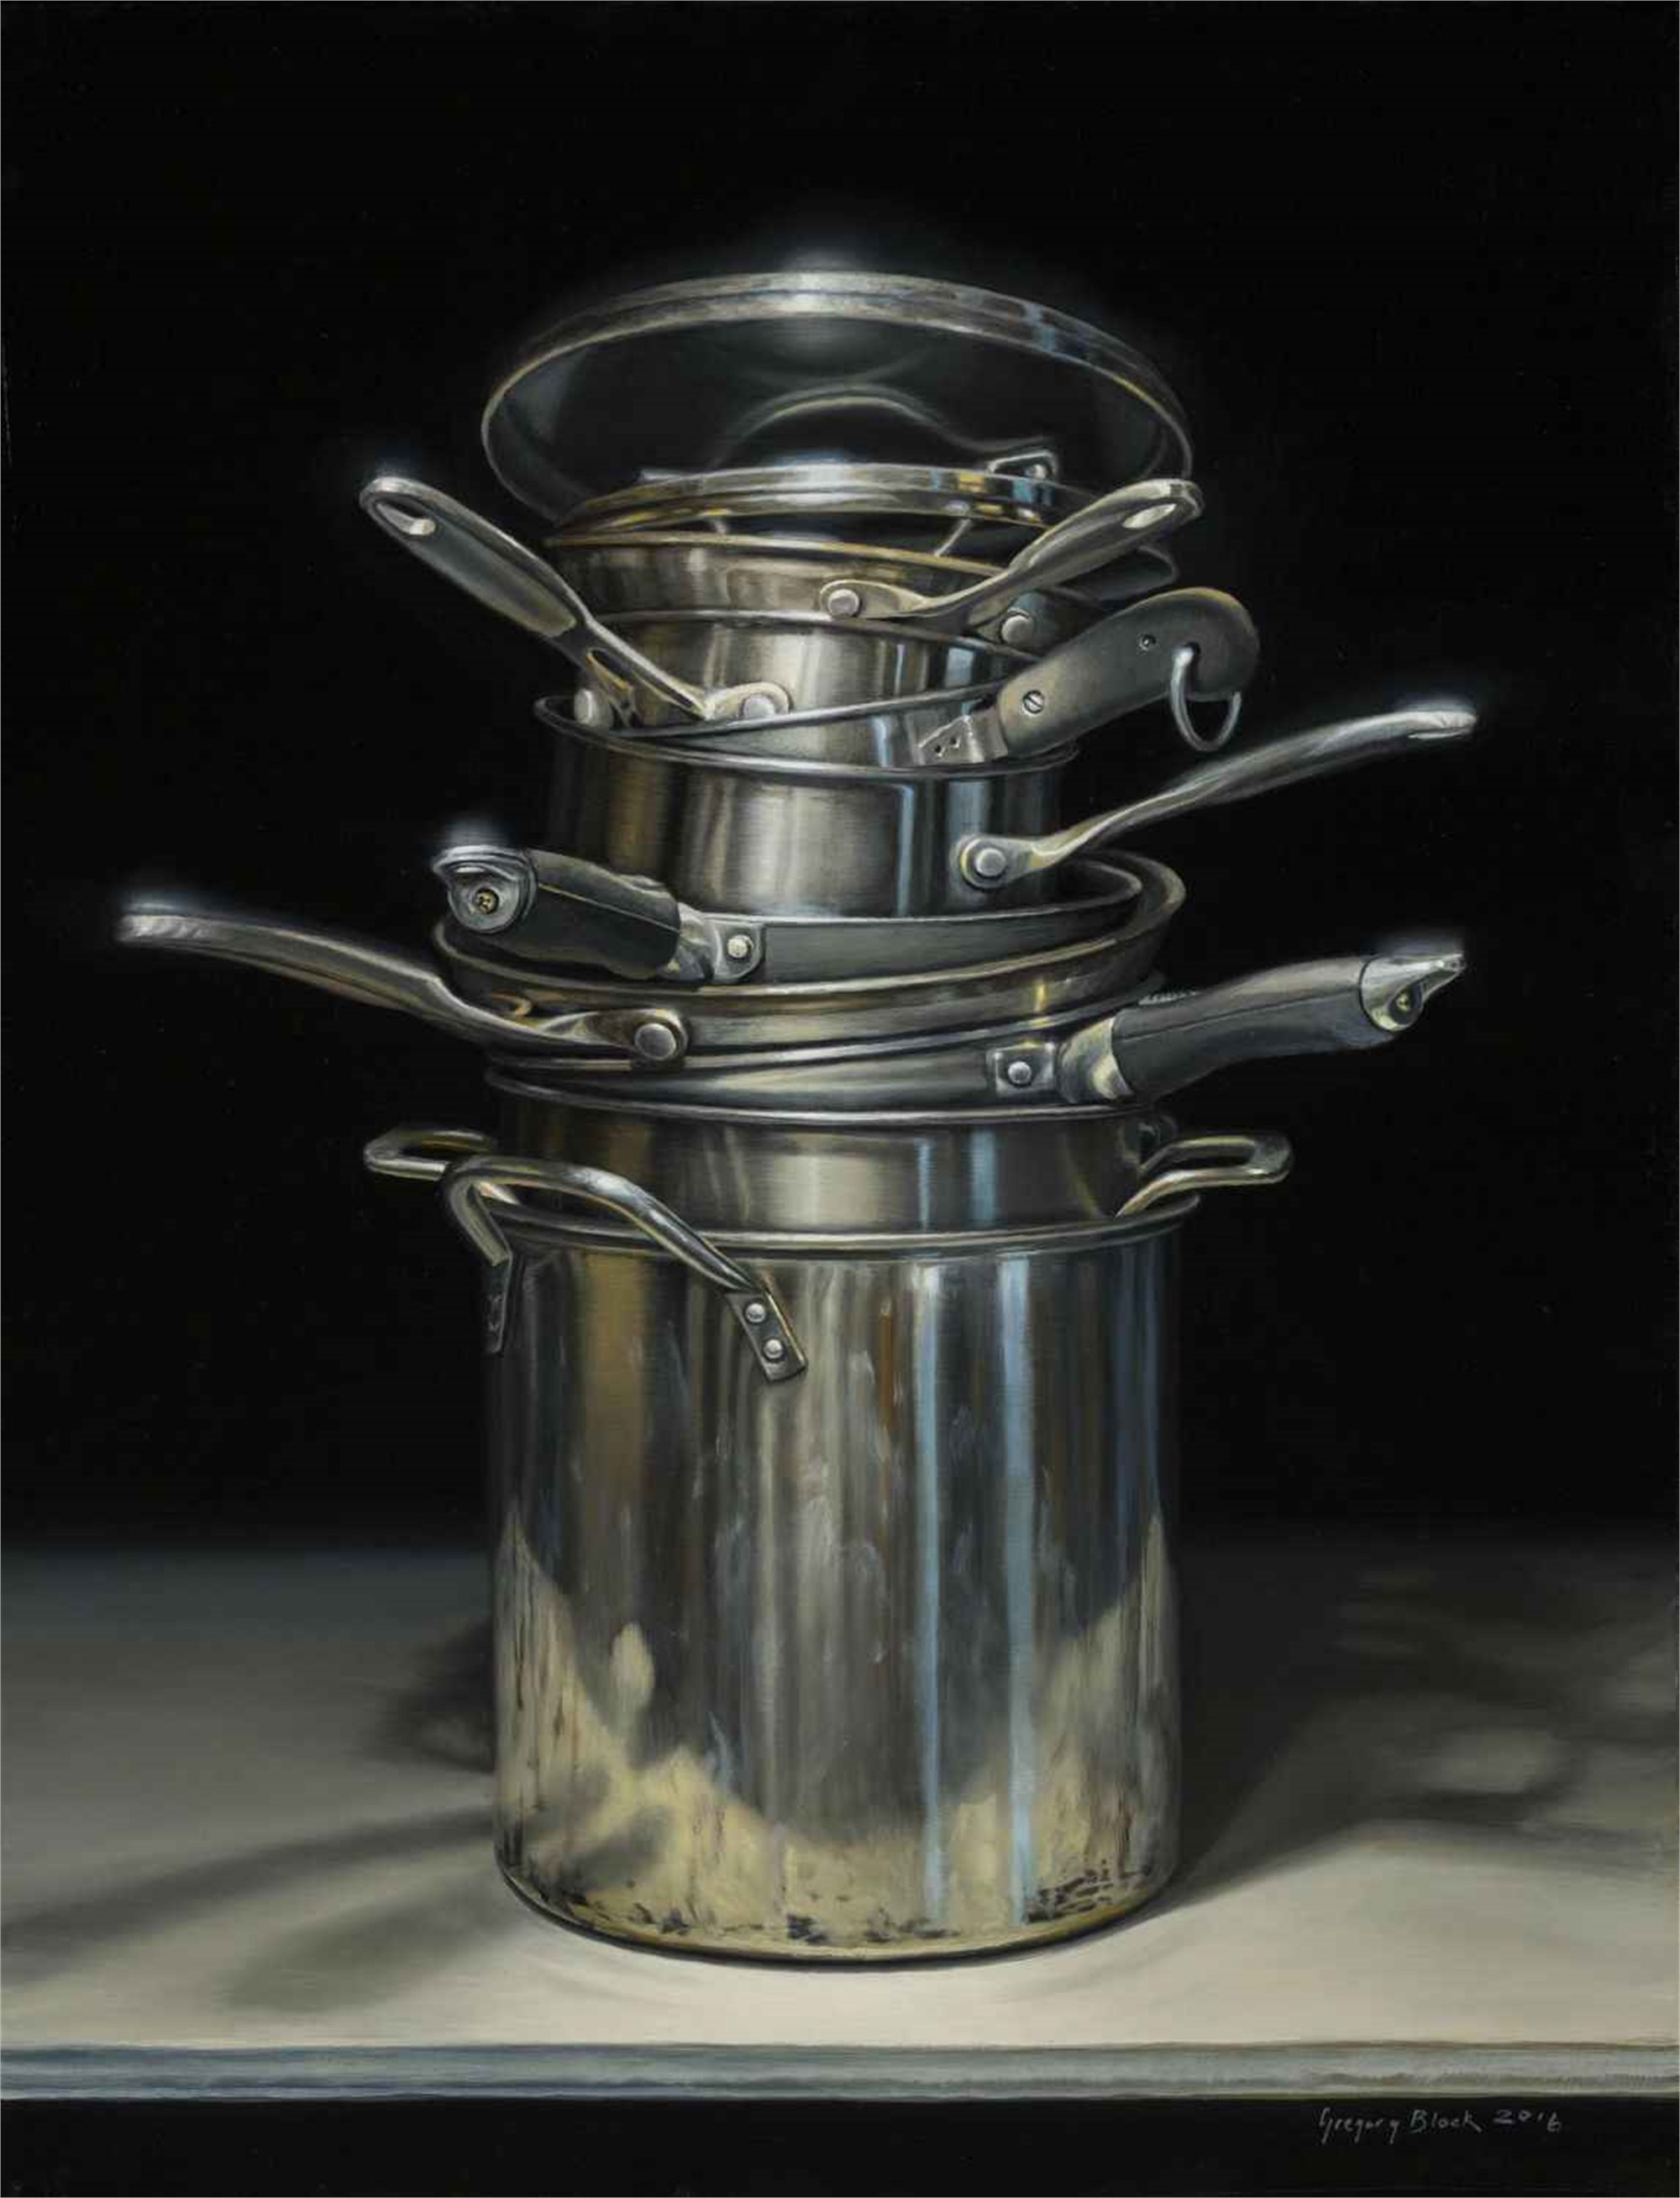 Pots and Pans by Gregory Block